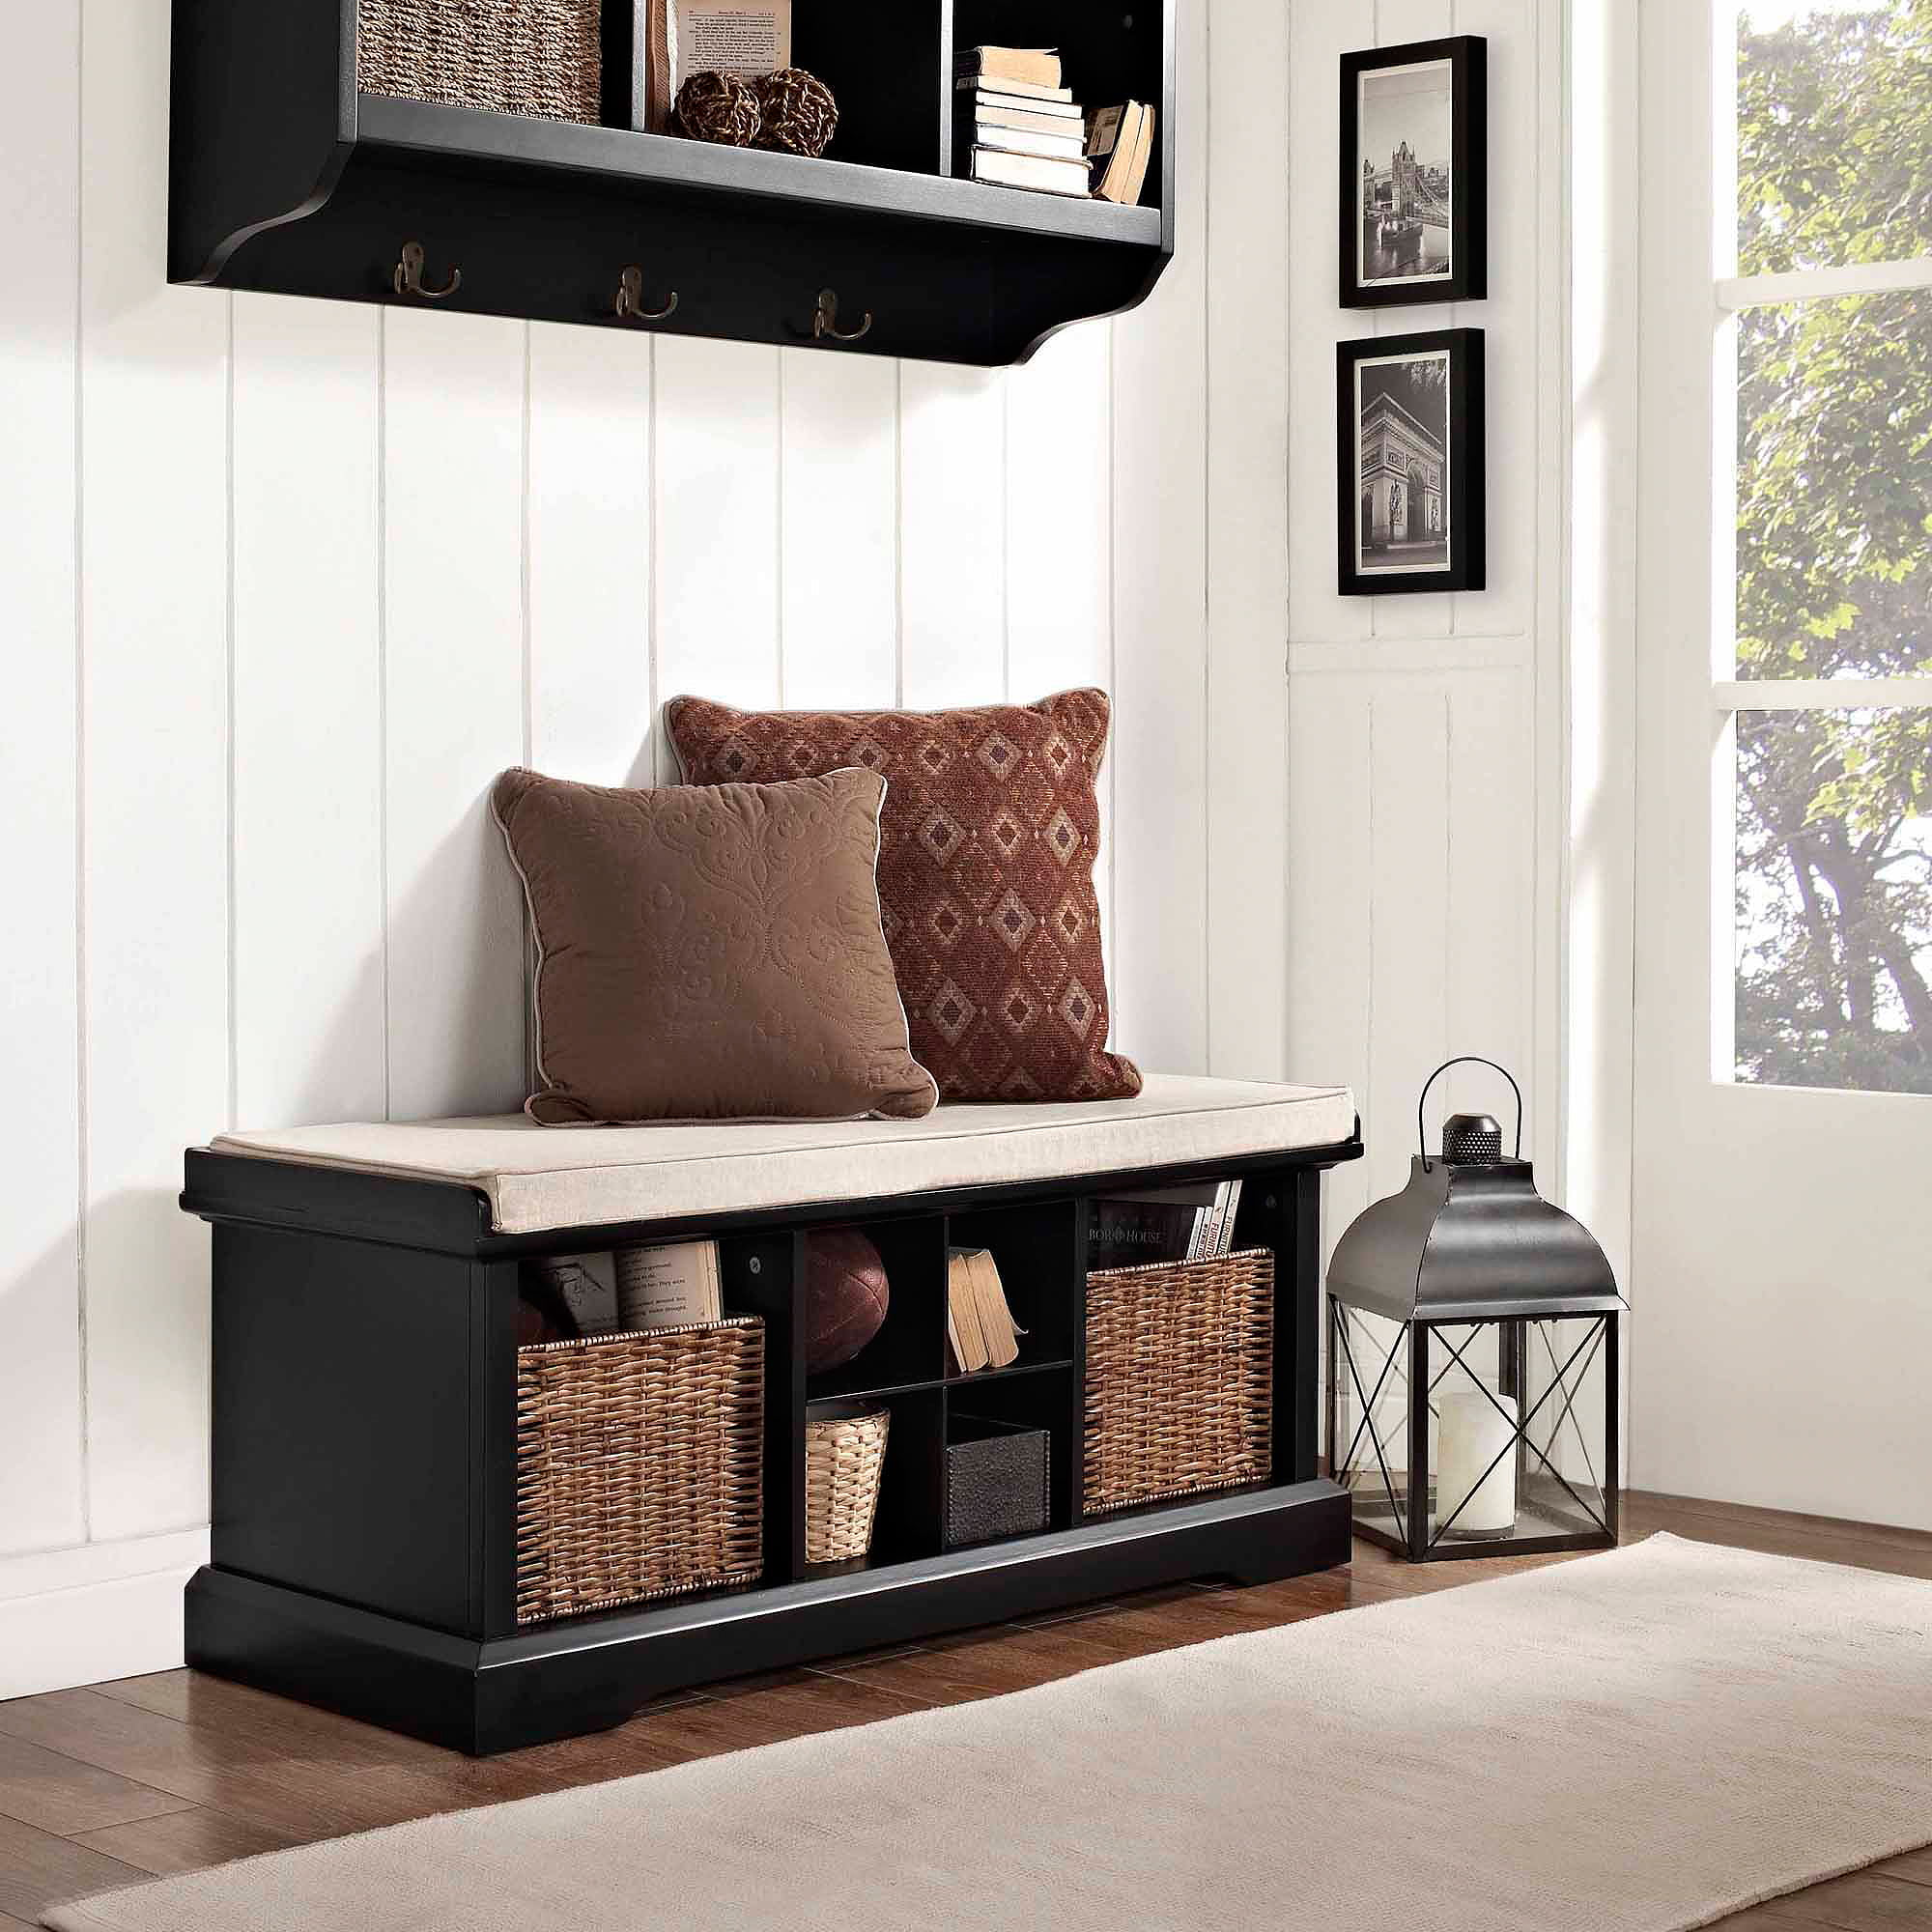 Entry Storage Furniture crosley furniture brennan entryway storage bench, multiple colors